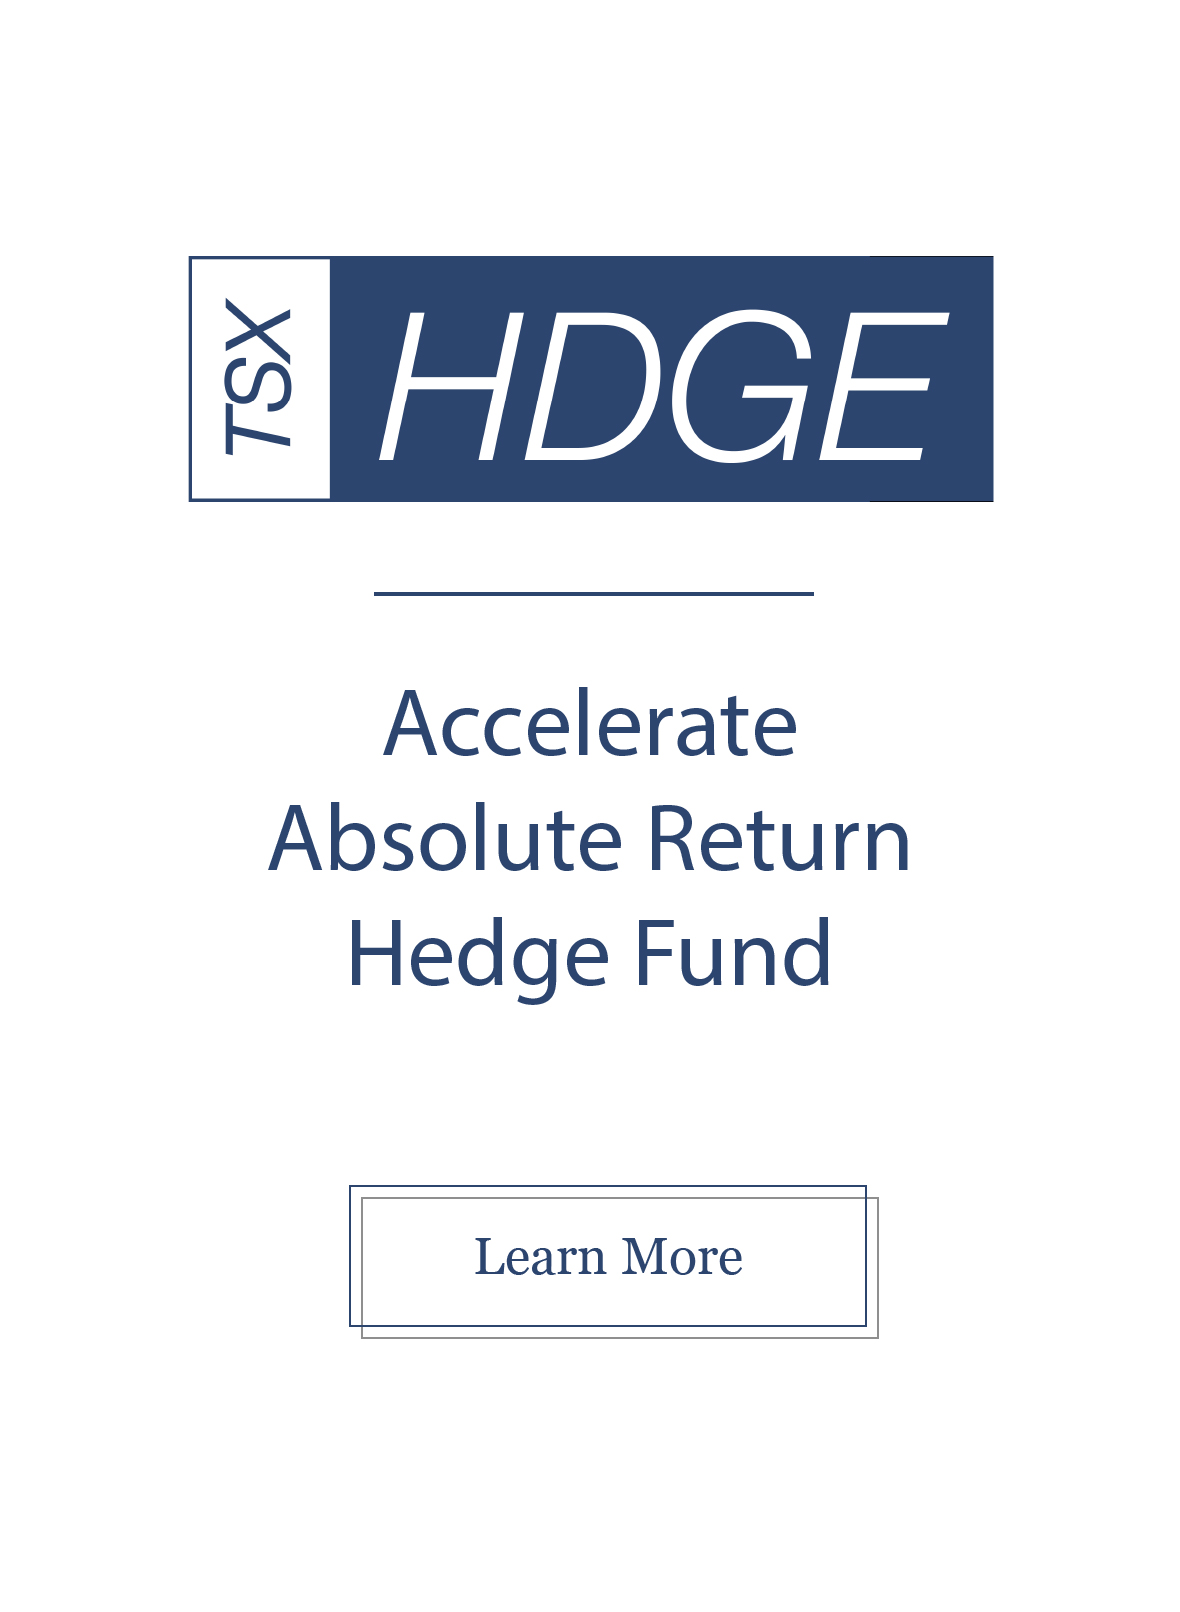 HDGE,Accelerate,Investment Solutions,Accelerate Stocks,